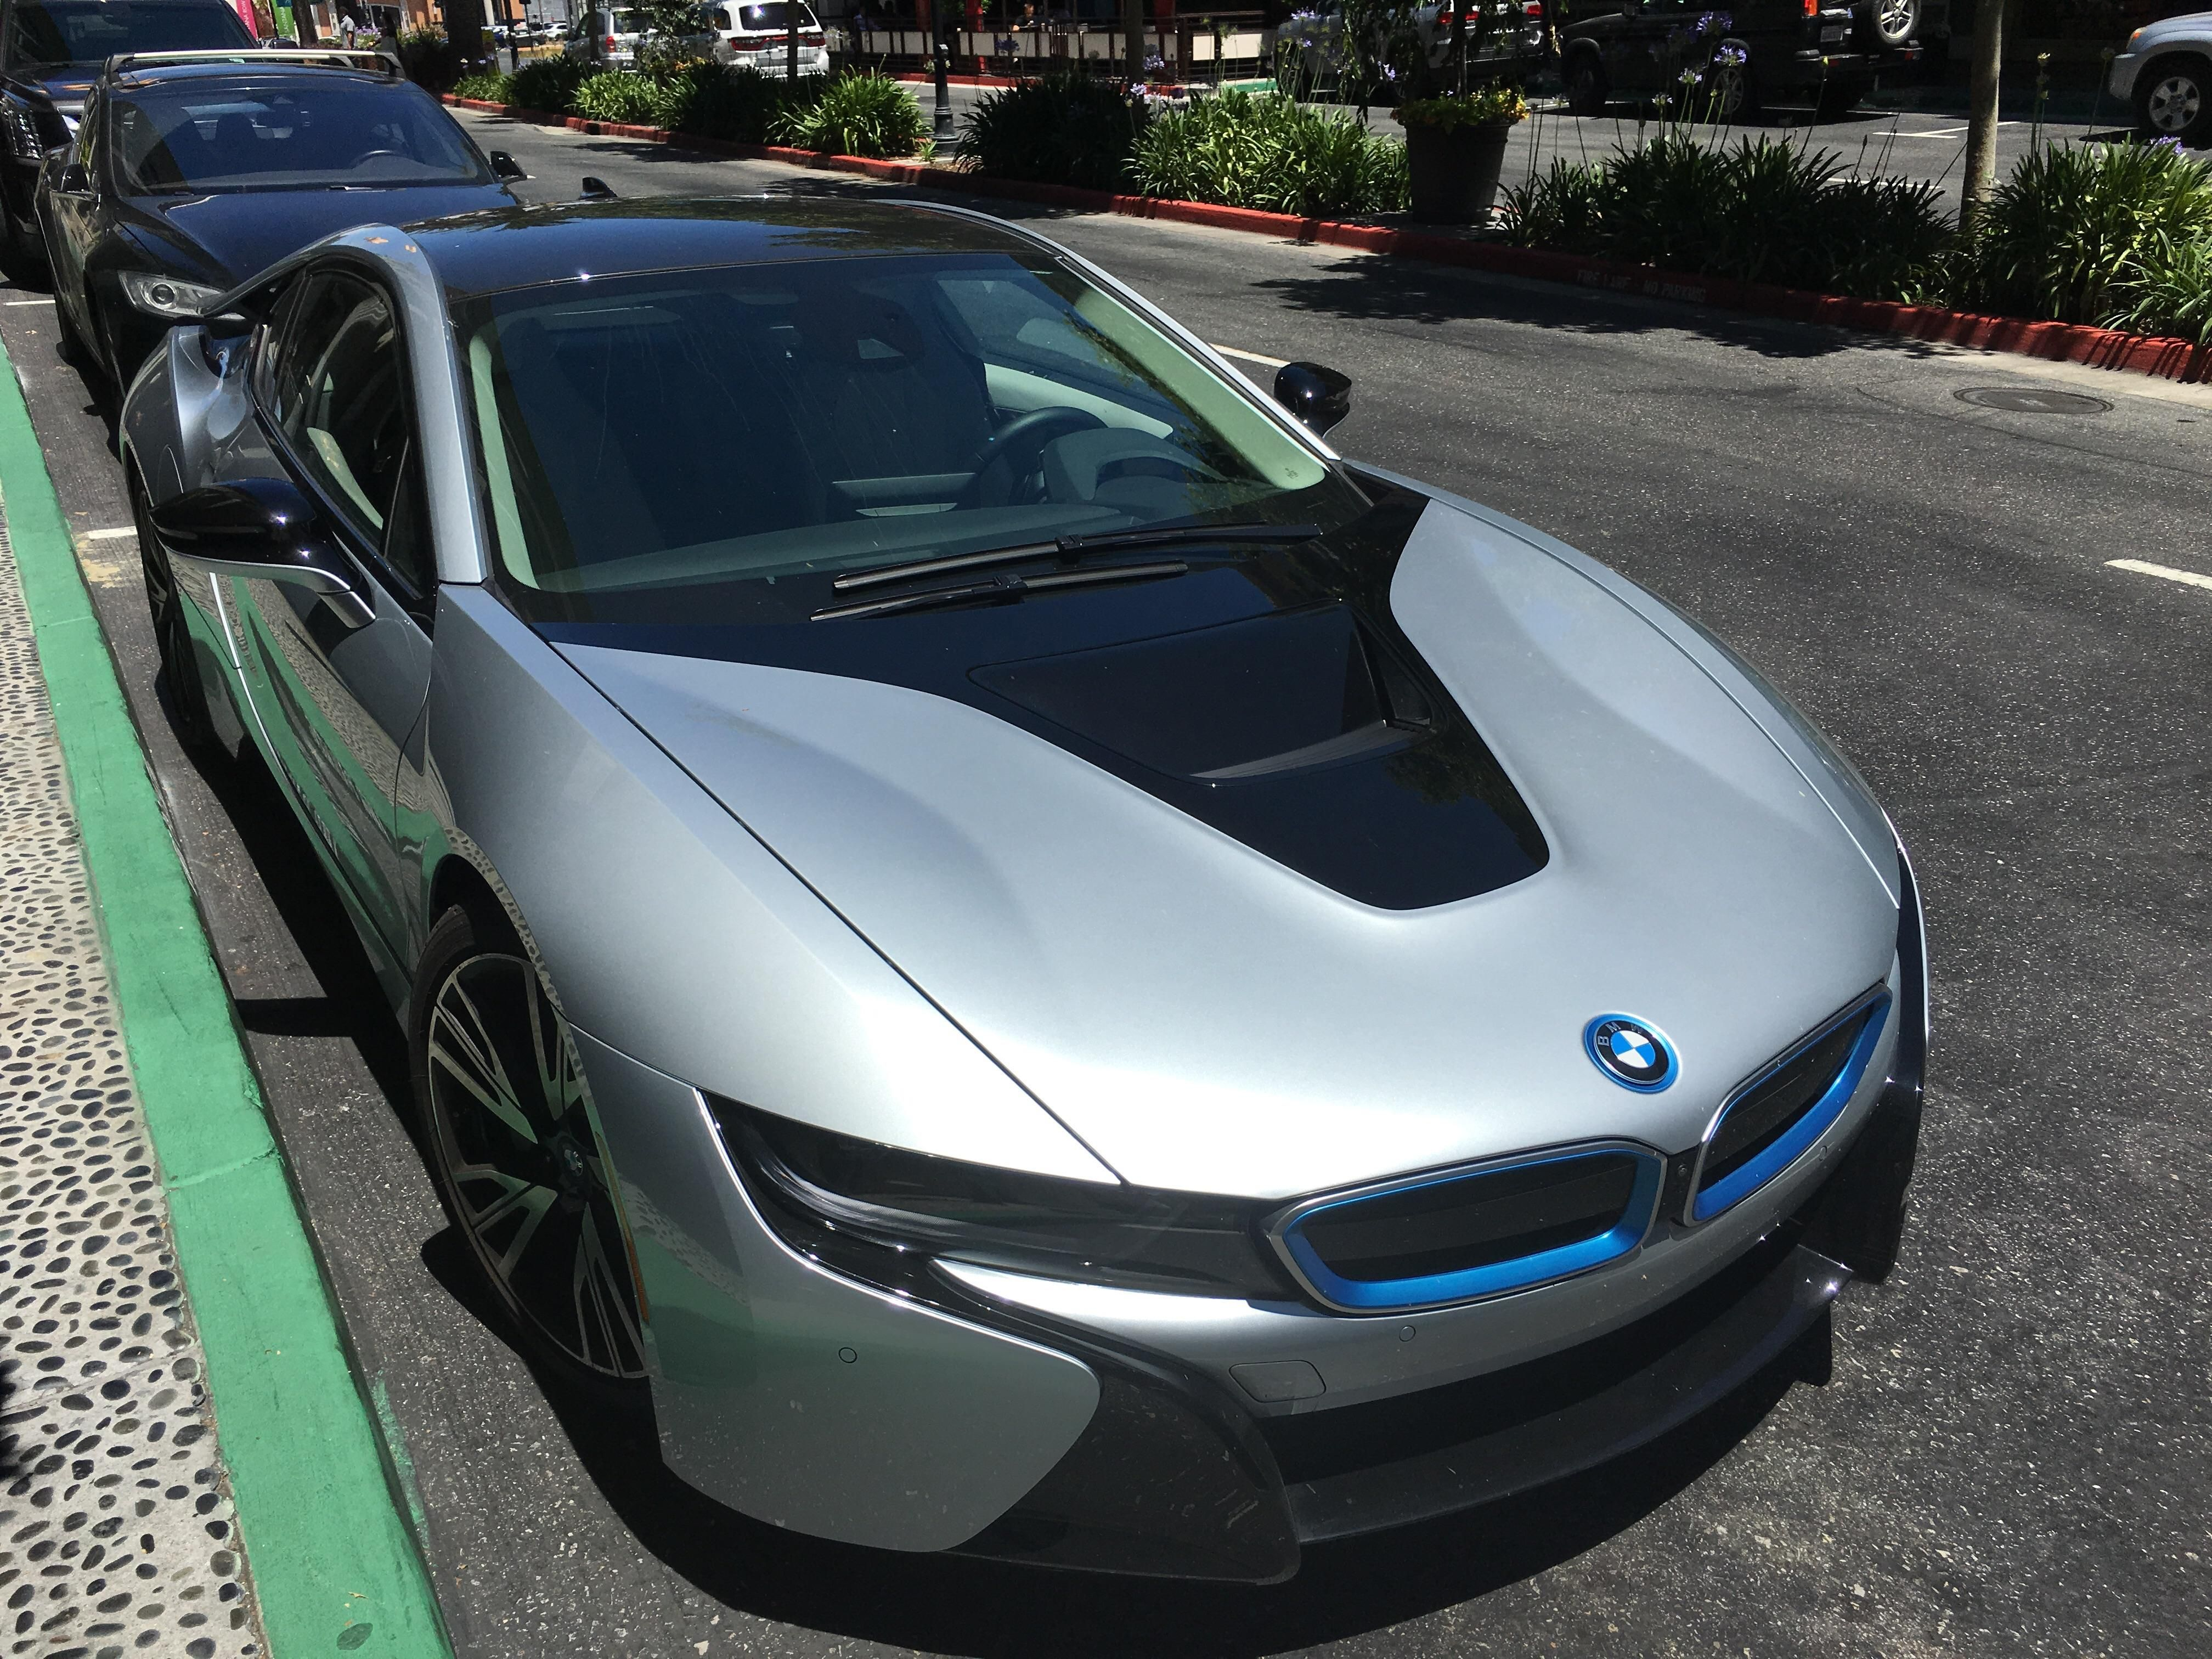 Beauties cXs Luxurious Lifestyle t Bmw i8 BMW and